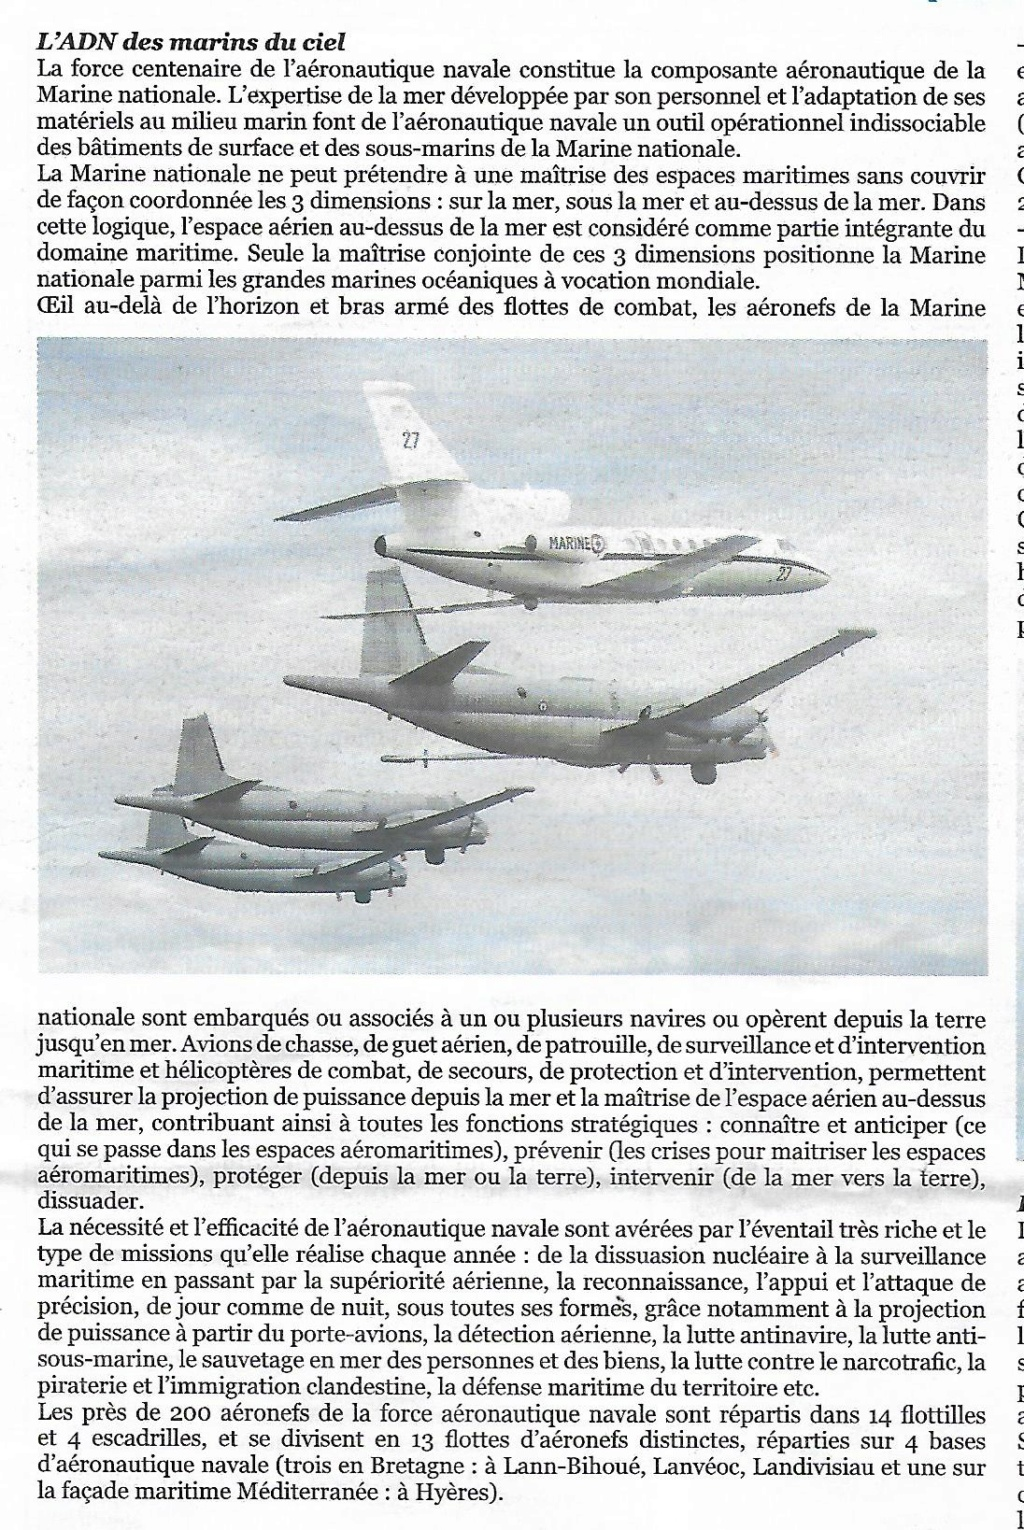 [ Aéronavale divers ] Aviation navale ? Scan_187